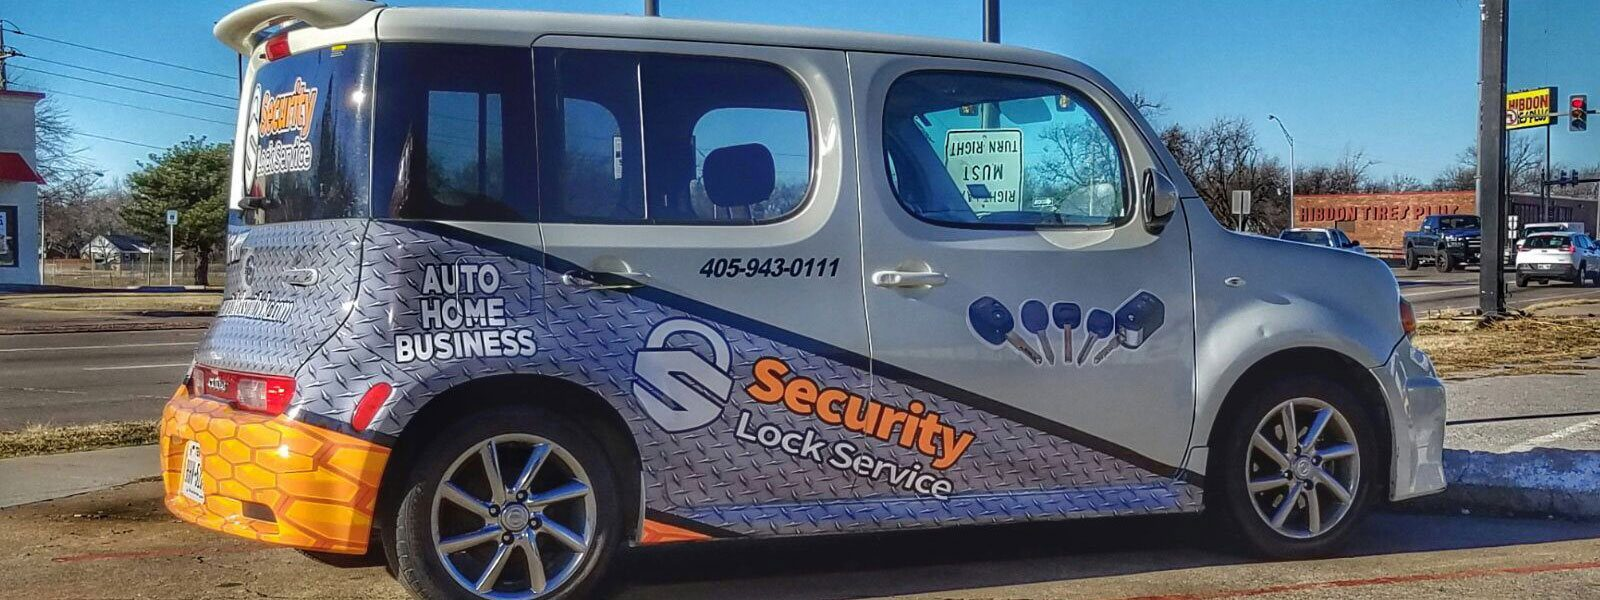 Locksmith Okc Locksmith Oklahoma City Ok Security Lock Service